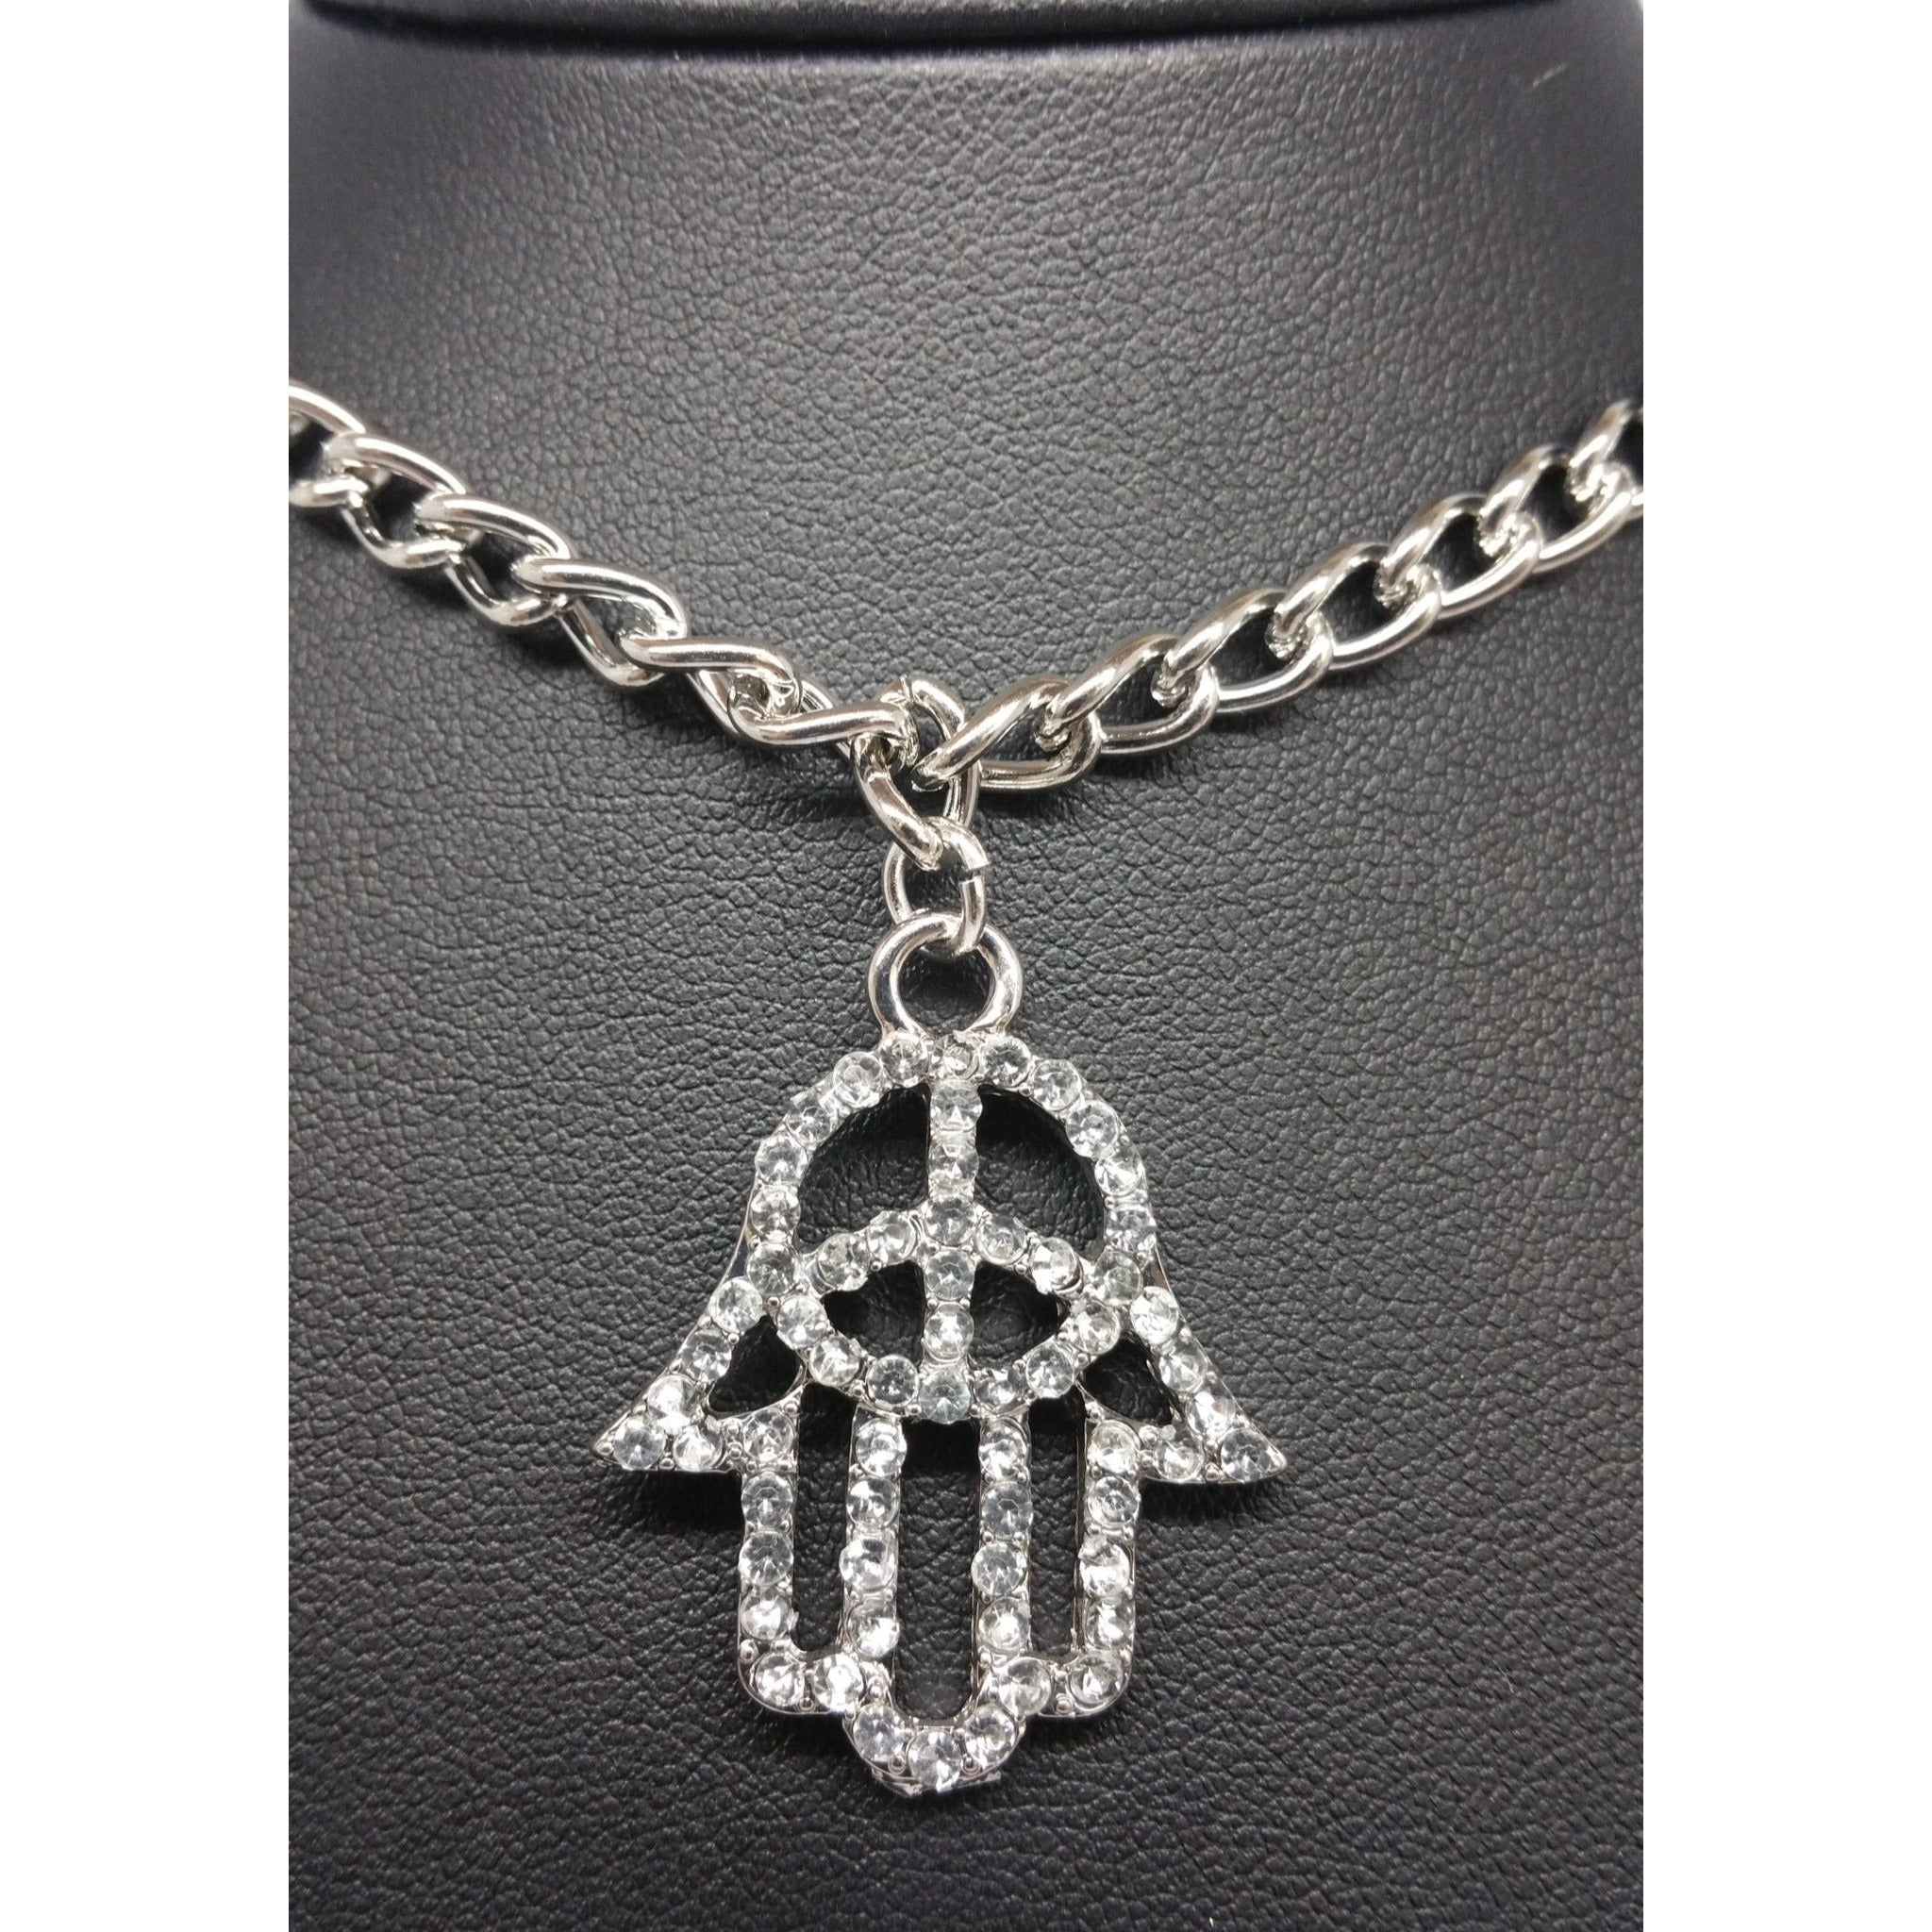 Hamsa Protection Necklace - Pretty Princess Style  - 2